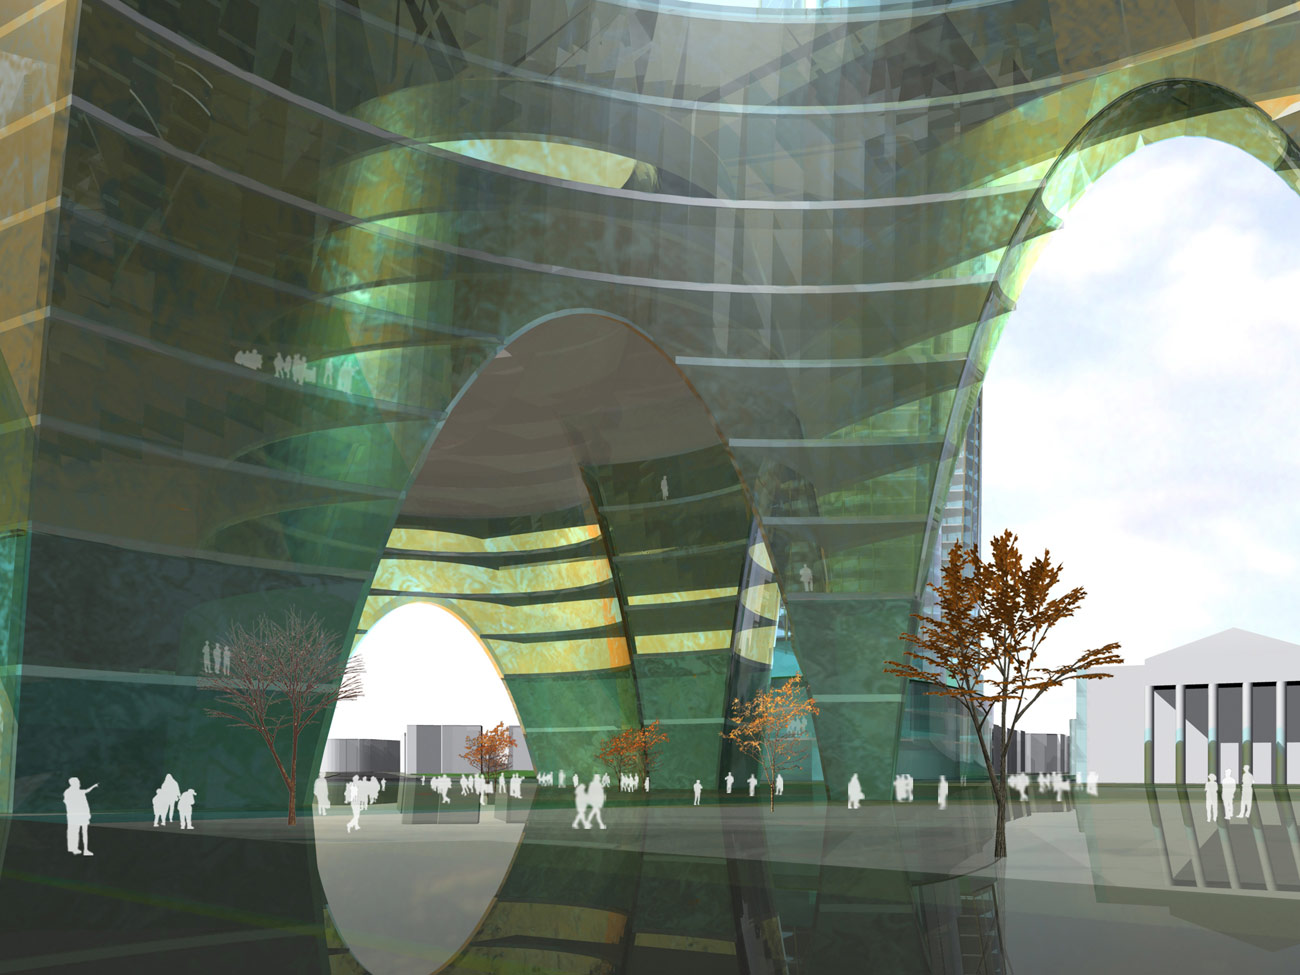 Elephant & Castle Master Plan Vault View by Marks Barfield Architects